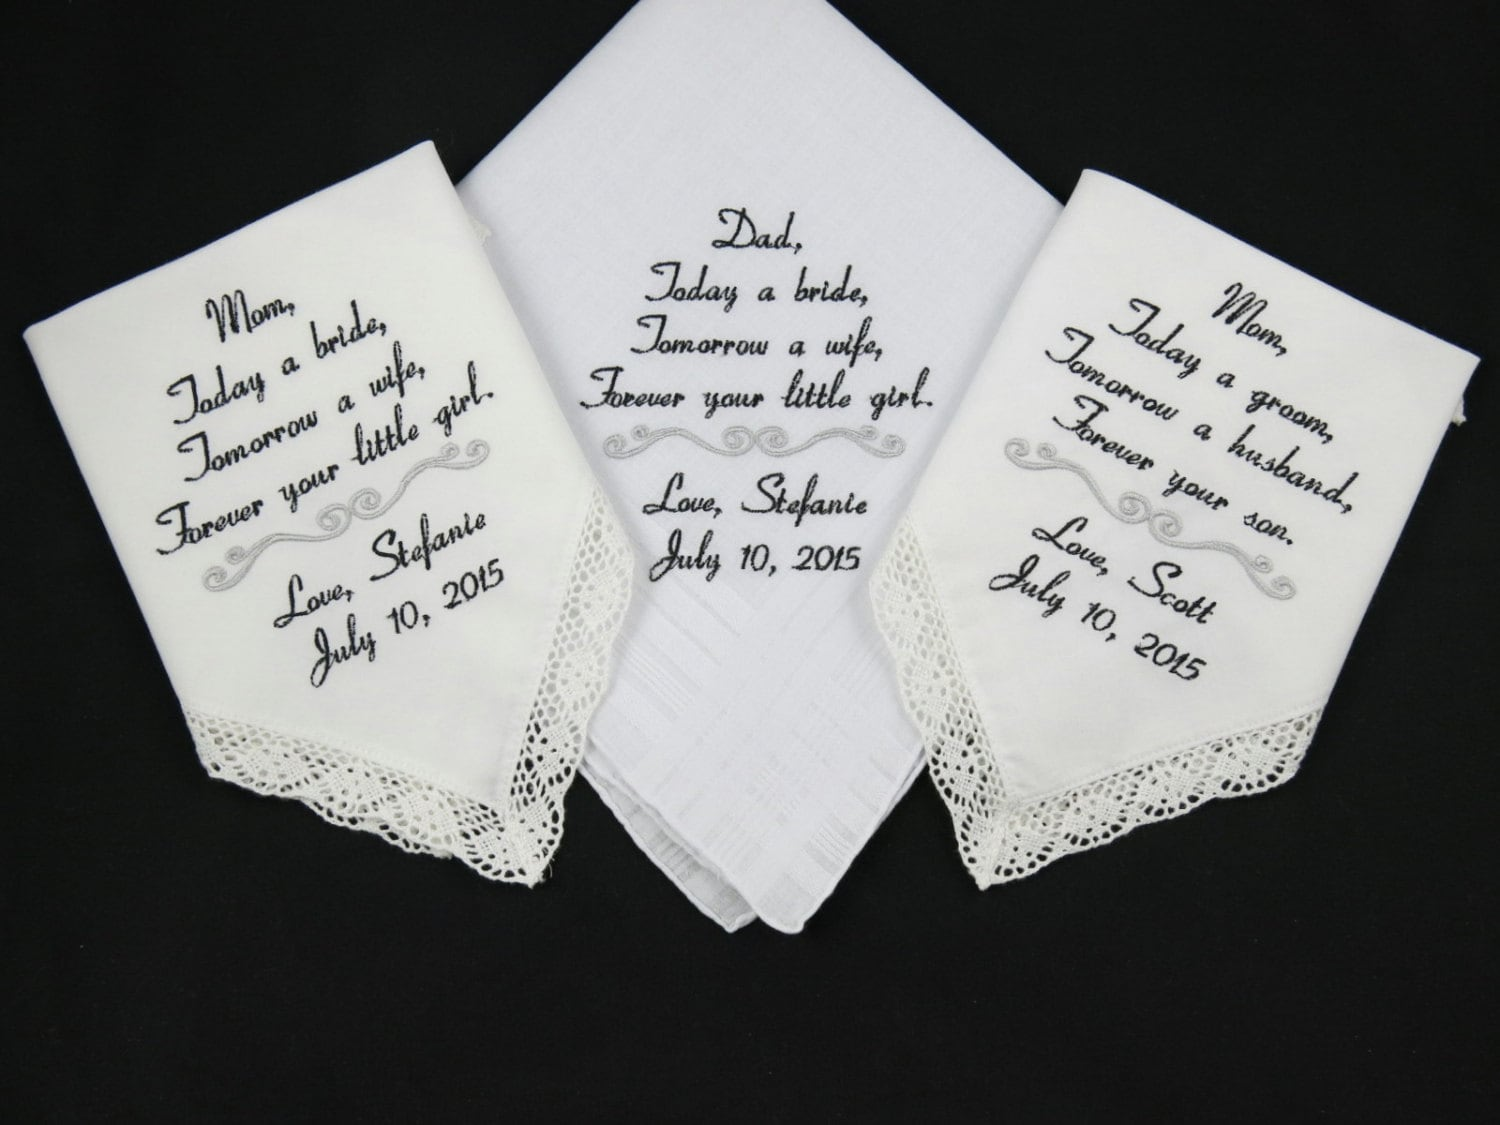 Wedding Handkerchiefs For The Family: Handkerchiefs Wedding Embroidered Personalized By